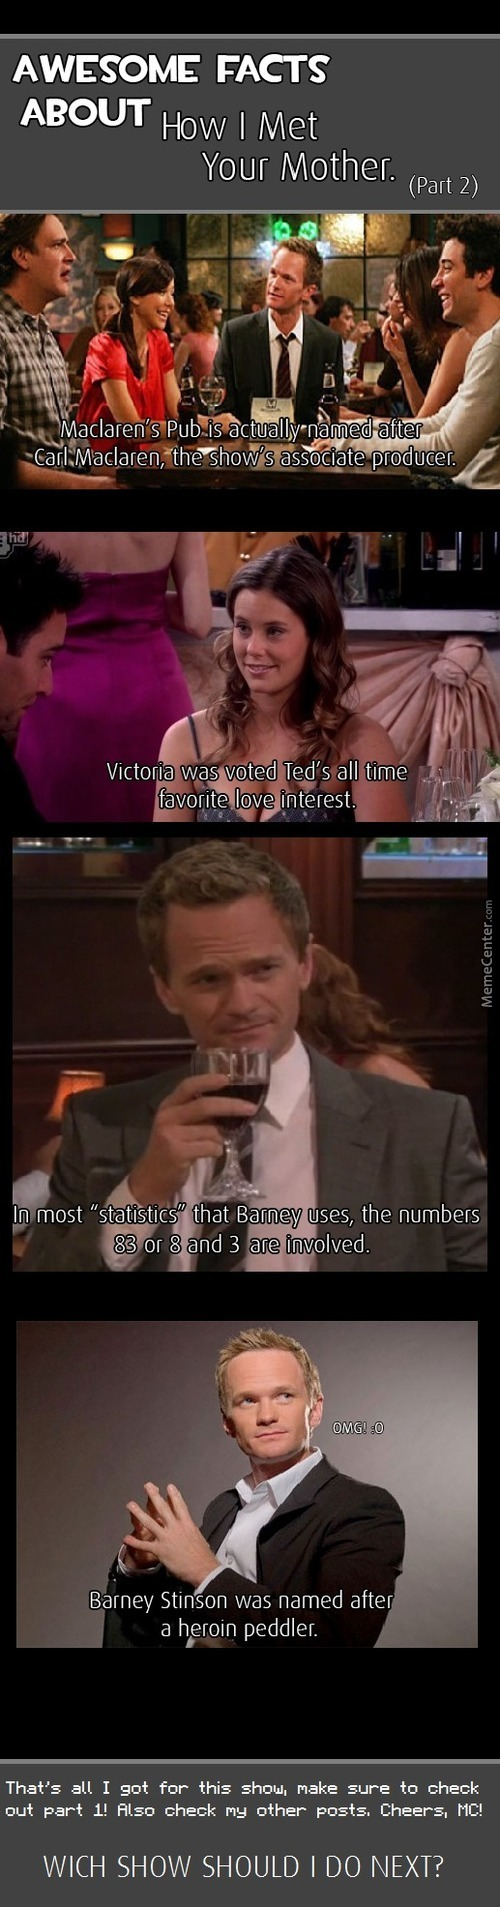 Facts About Himym Part 2.